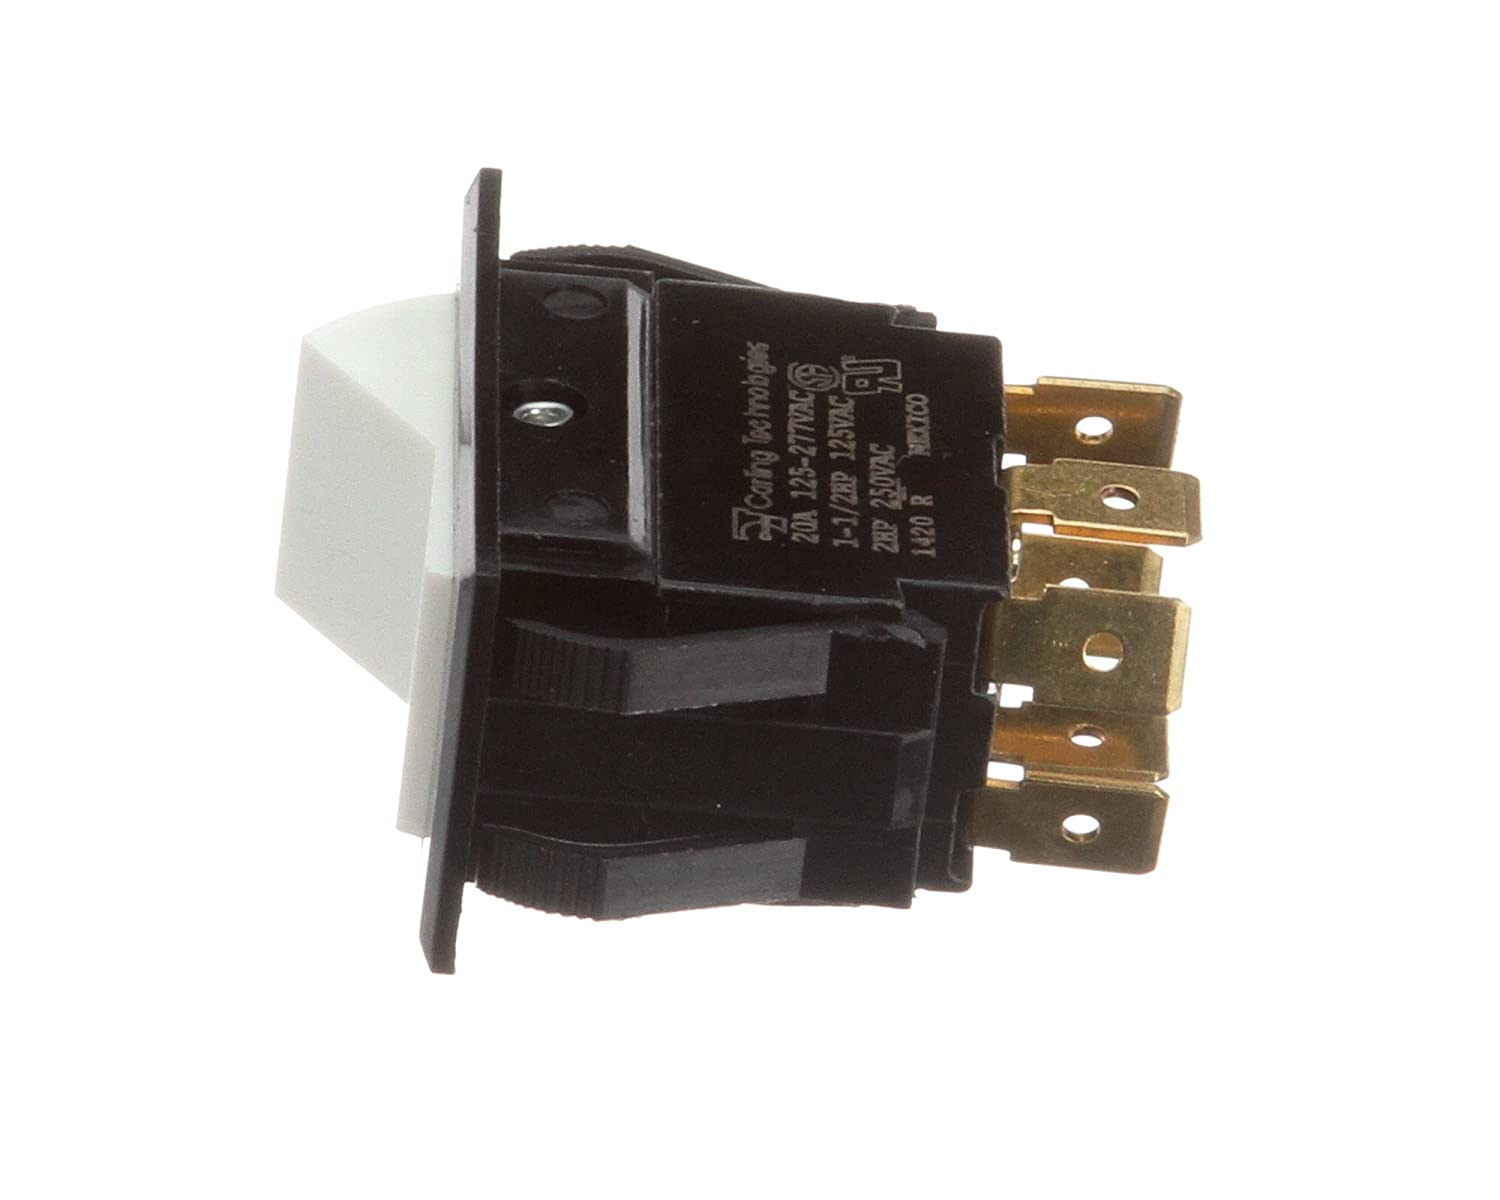 Hamilton Beach 30879800100 Low/High Switch for 990 Commercial Food Blender